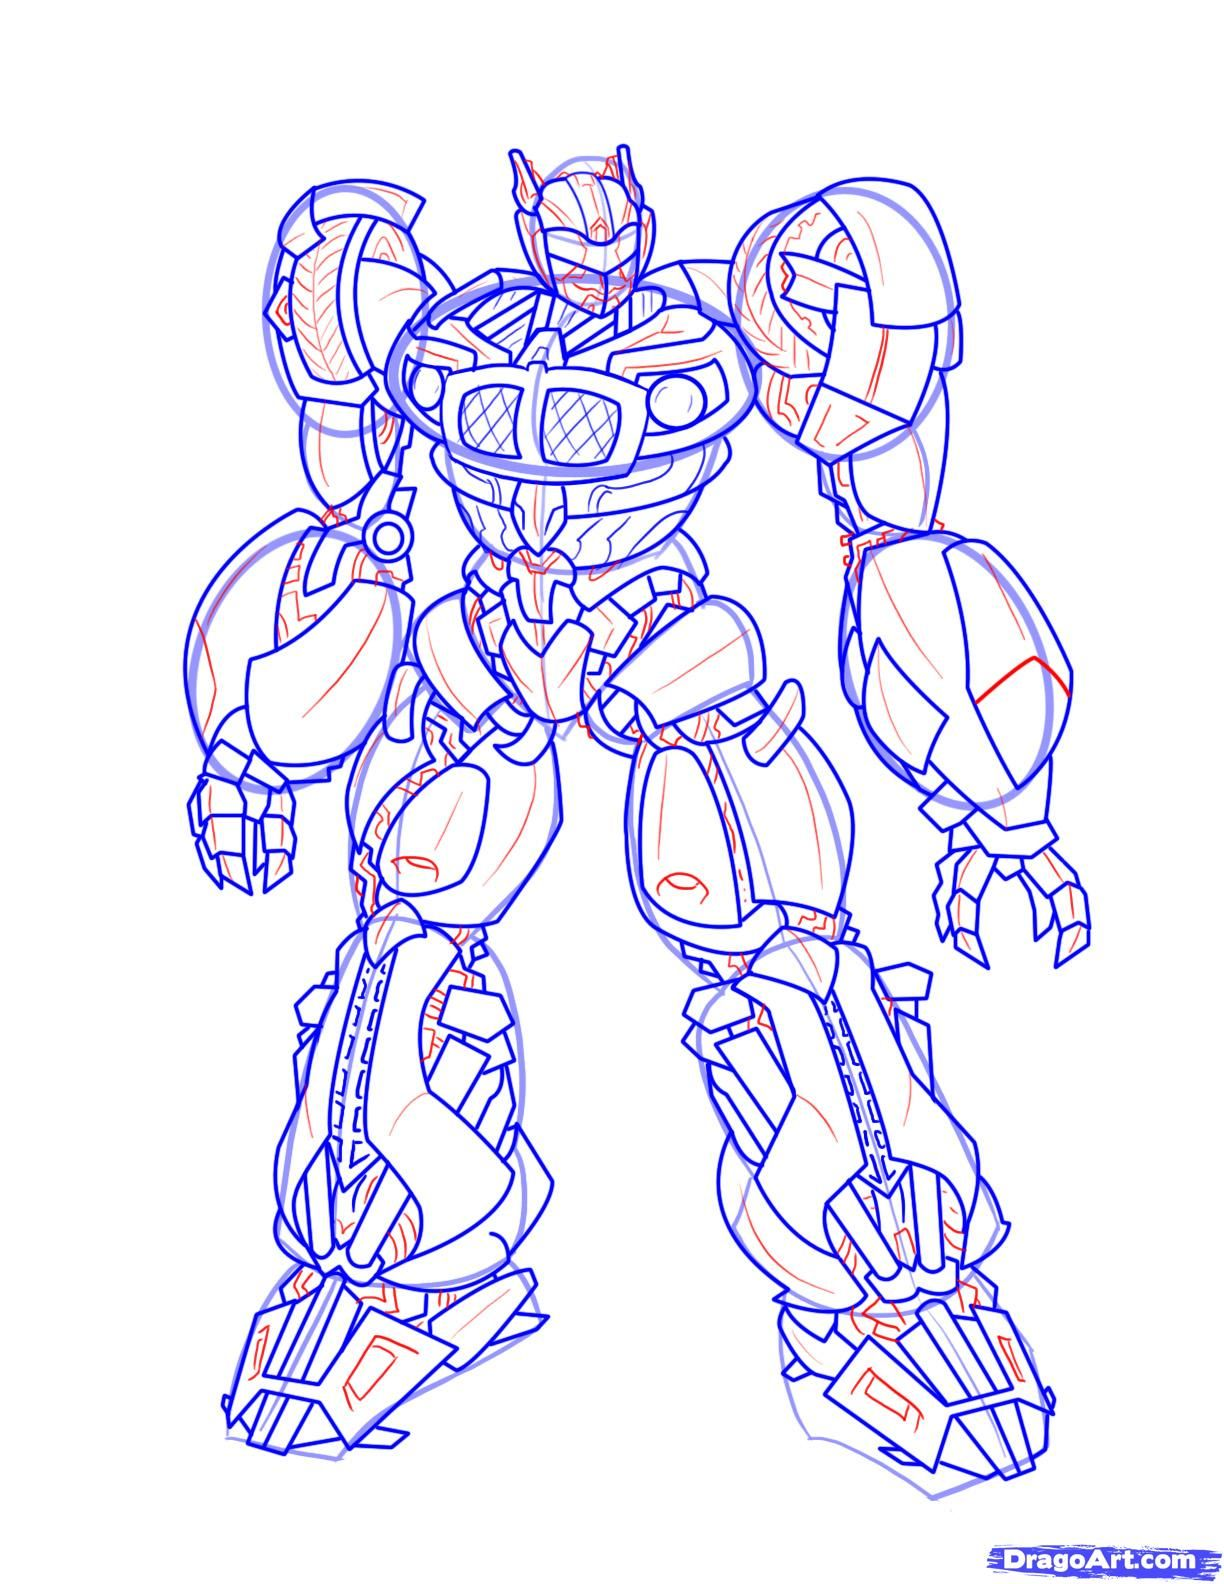 how to draw transformers | Art | Pinterest